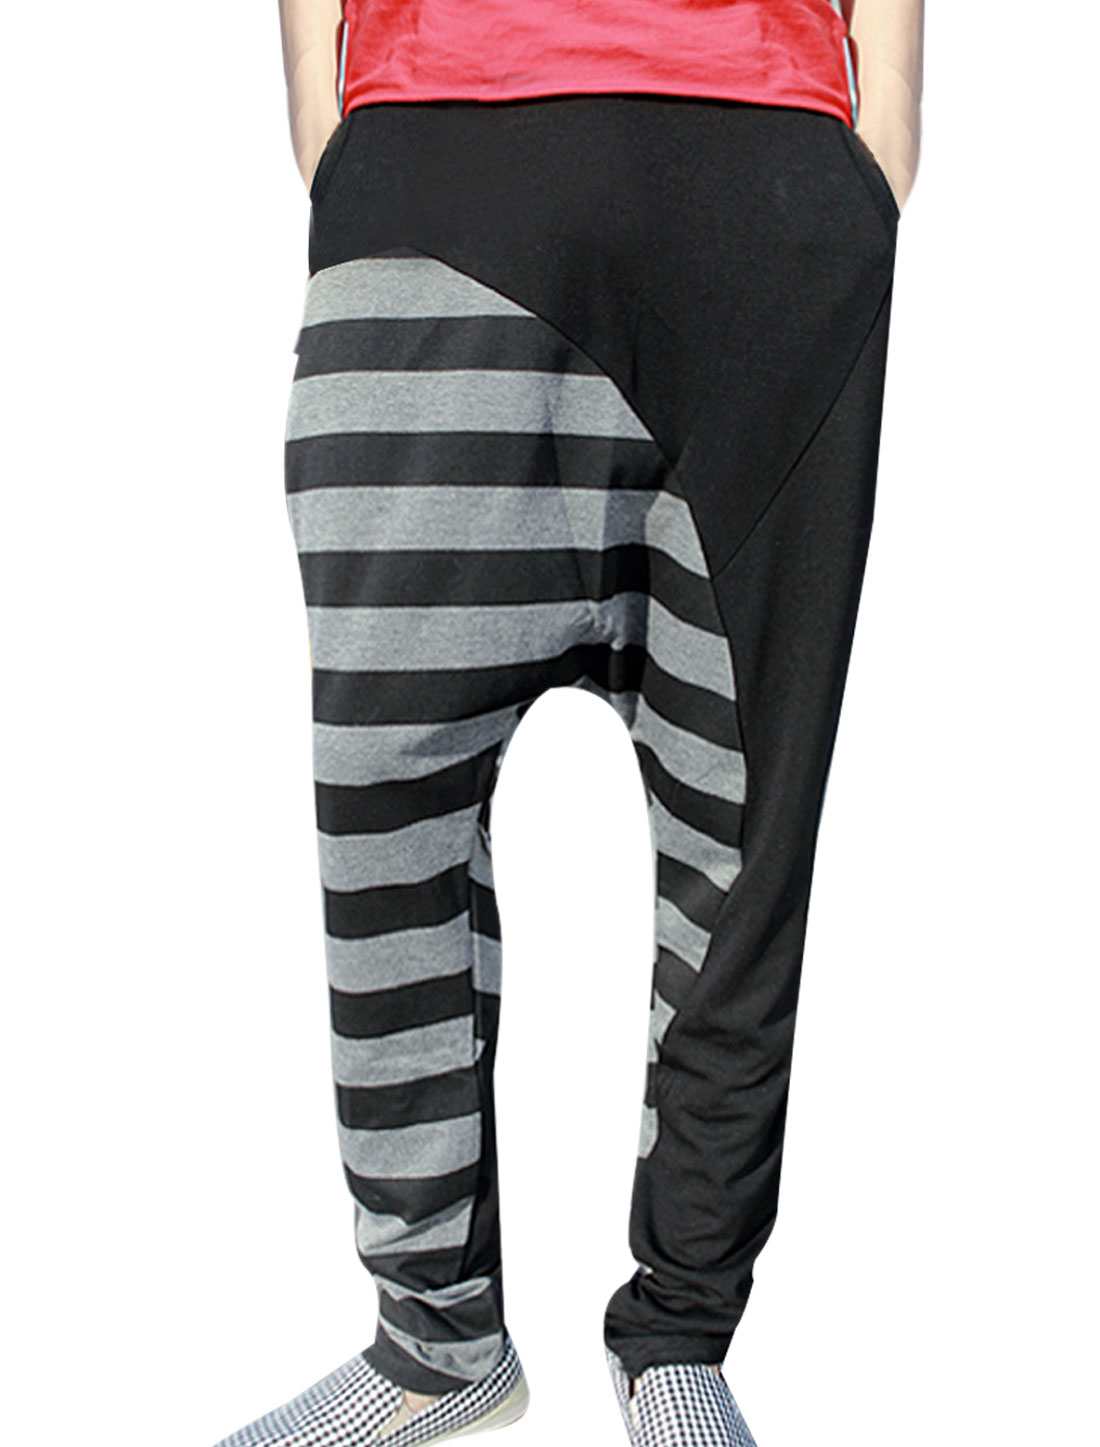 Men Elastic Waist Slant Pockets Stripes Harem Pants Black Gray W27